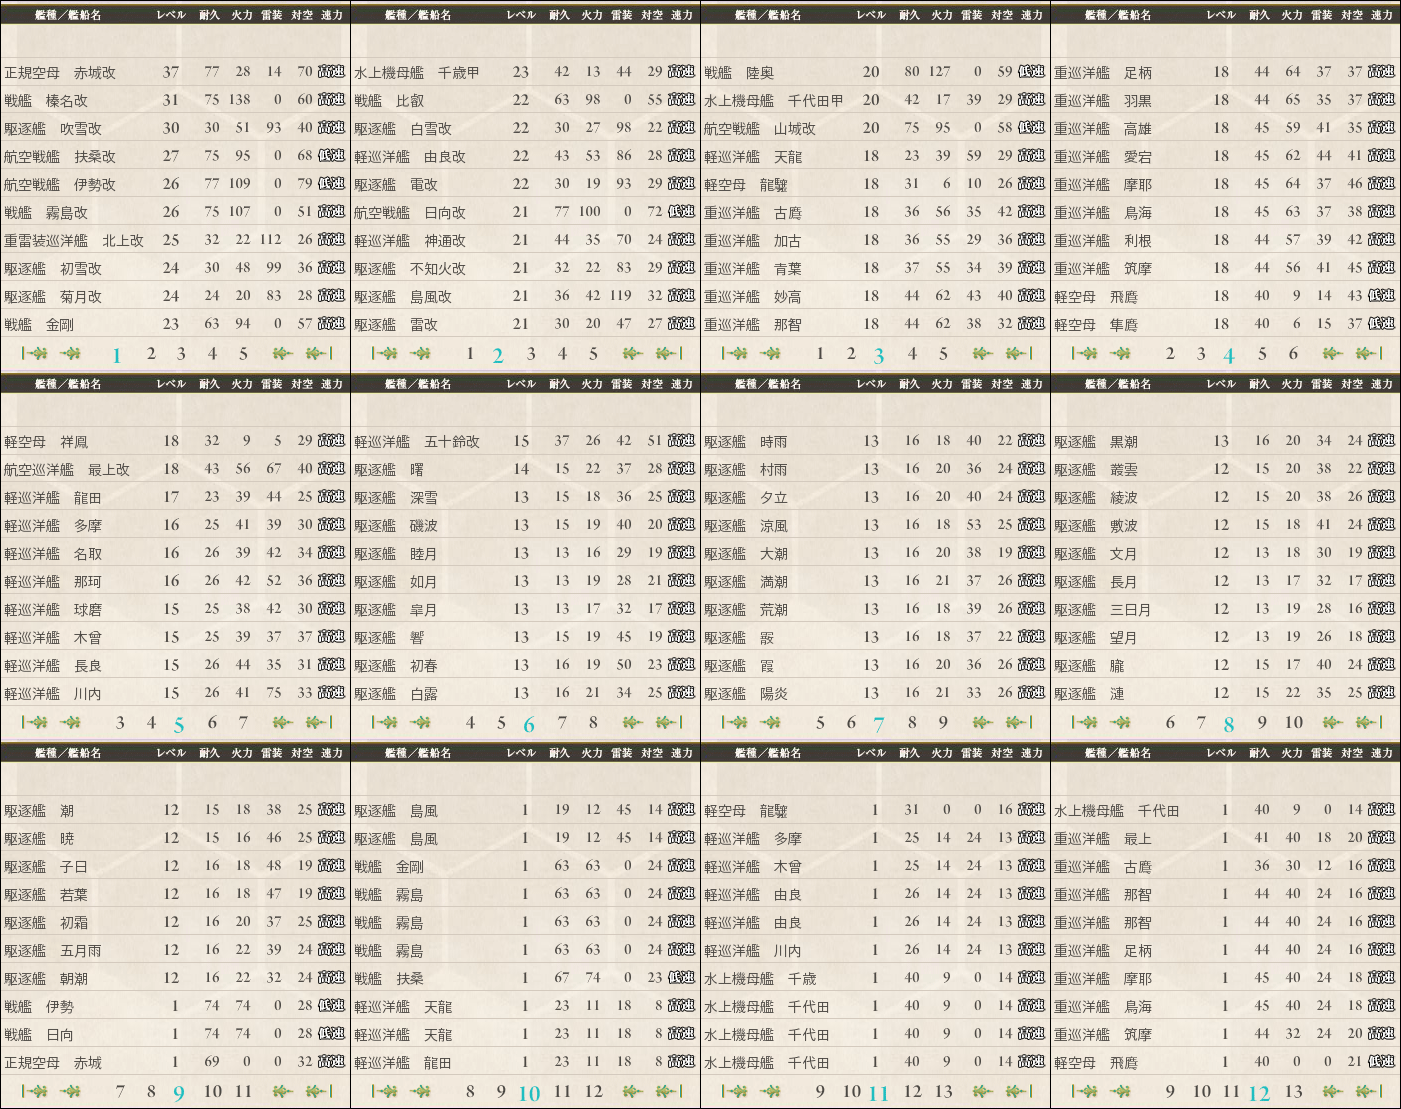 data.kancolle.levelsort.20130908.png